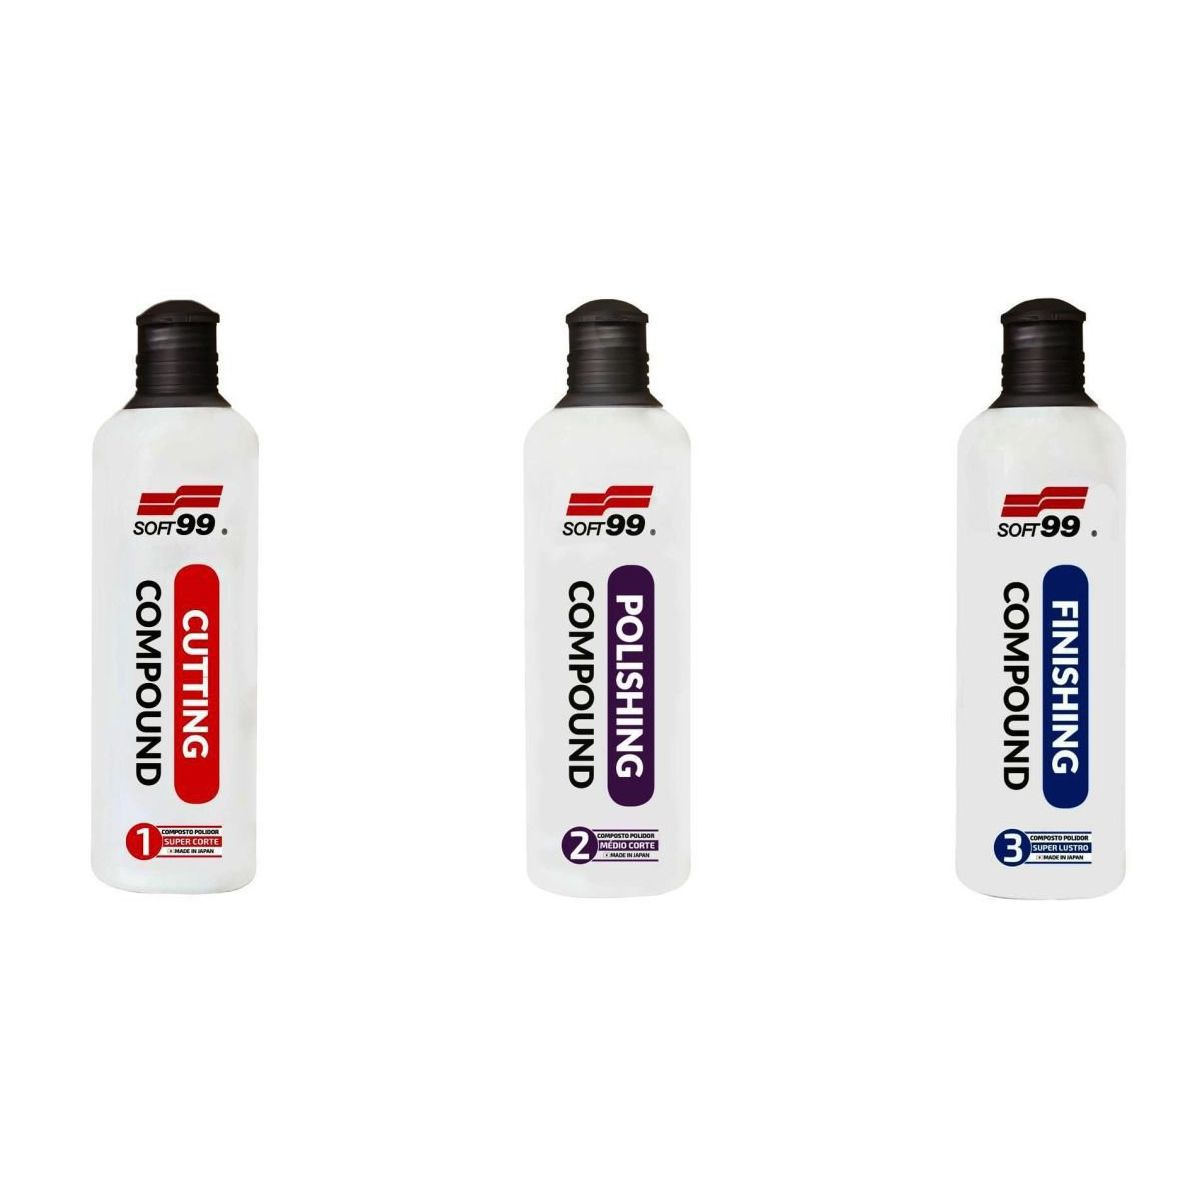 Kit Composto N1 Cutting Super Corte, N2 Polishing Medio Corte, N3 Finishing Lustro 300ml Soft99